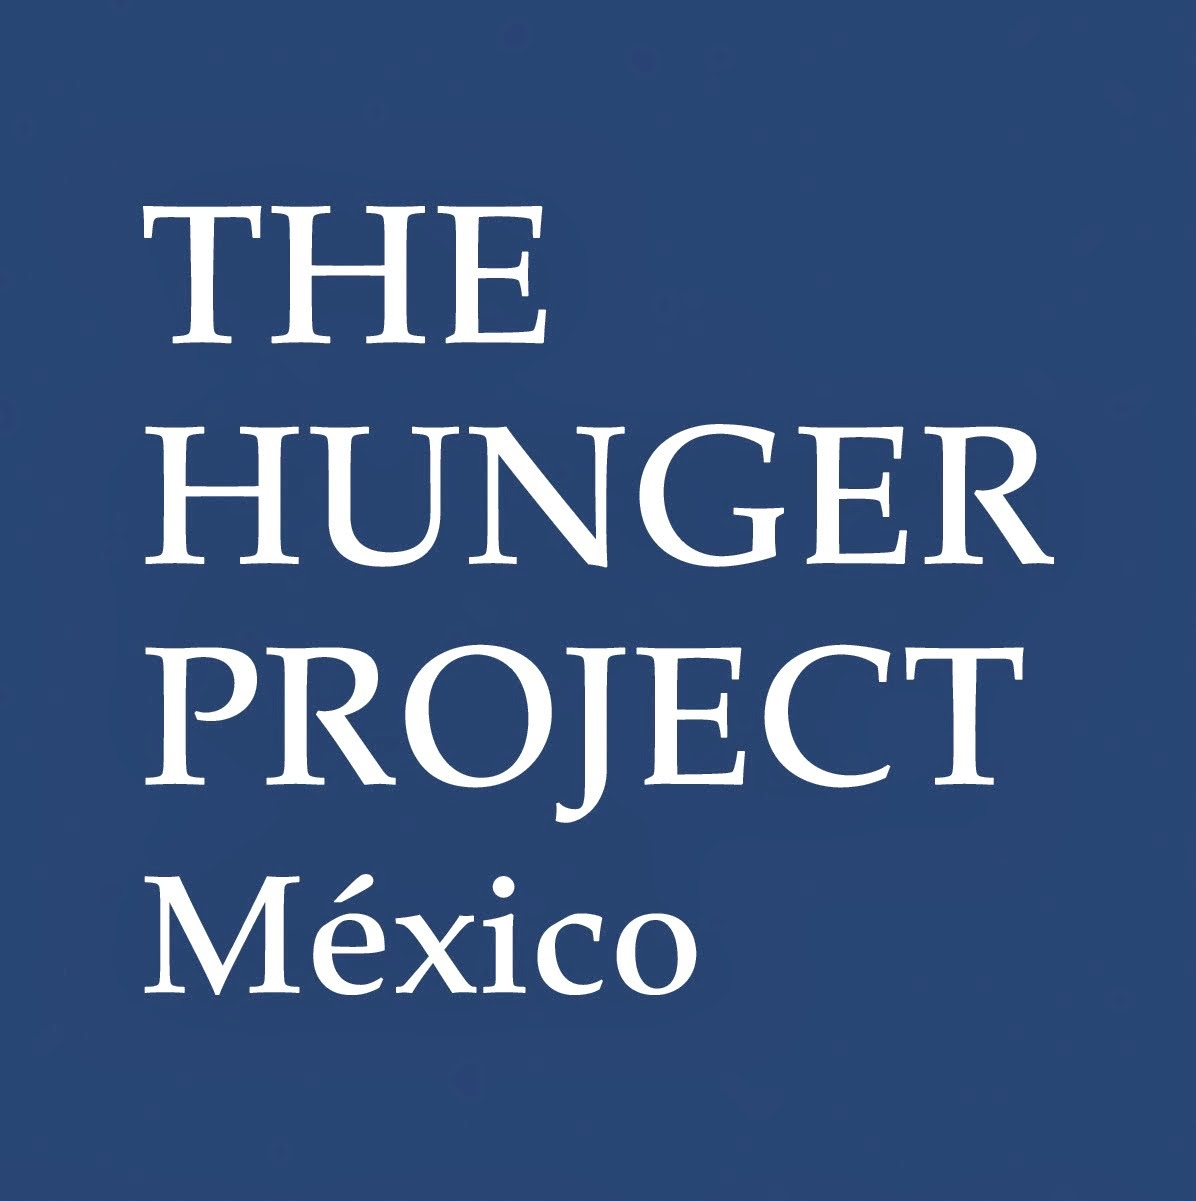 The Hunger Project México